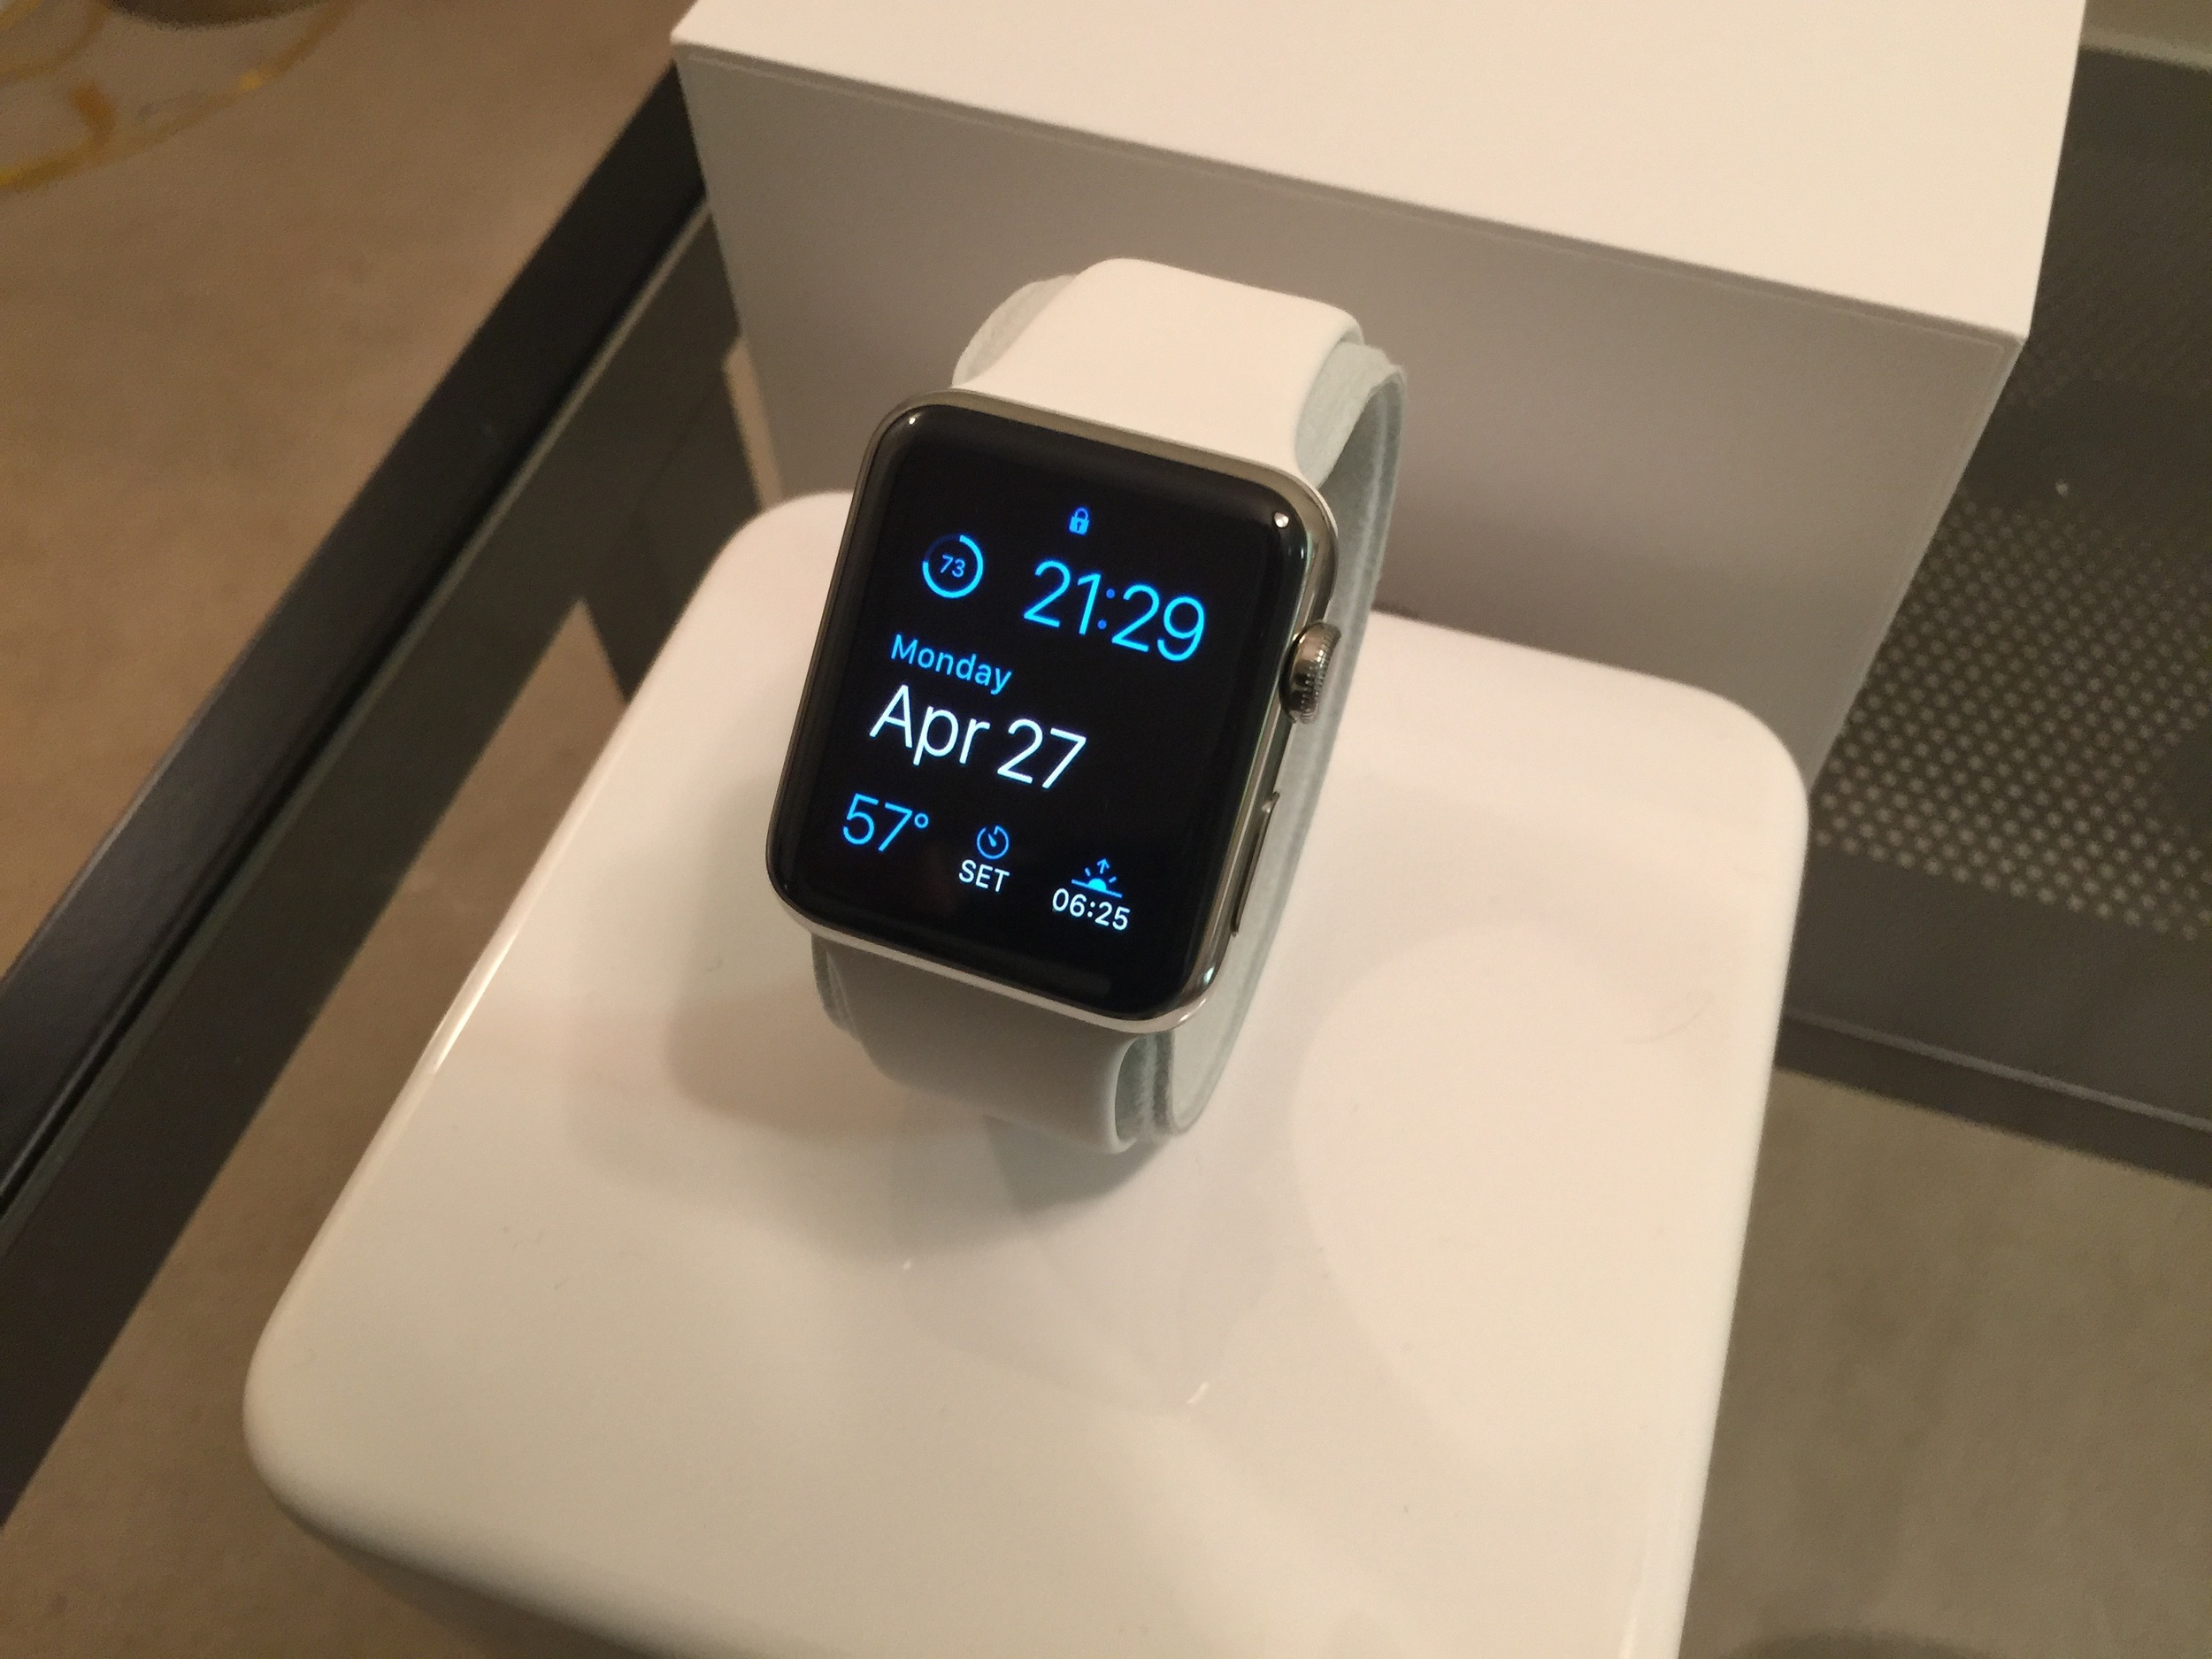 The AppleWatch looking pristine right out of the box